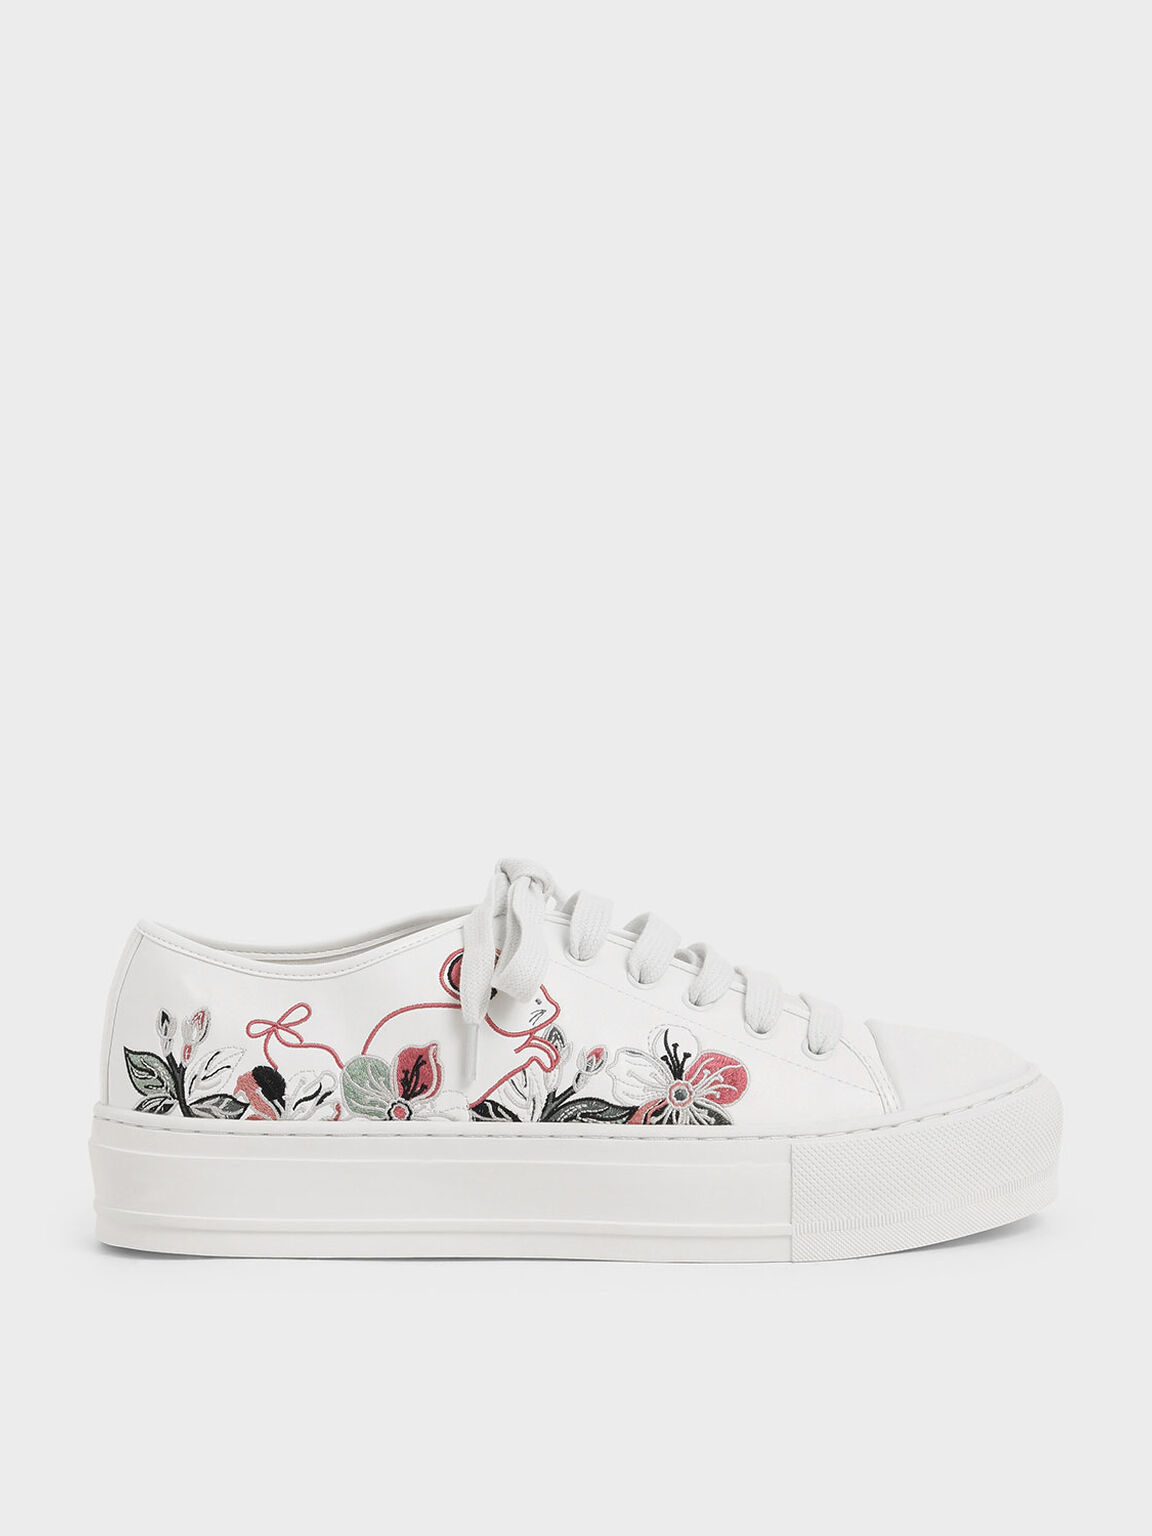 Embroidered Sneakers, White, hi-res